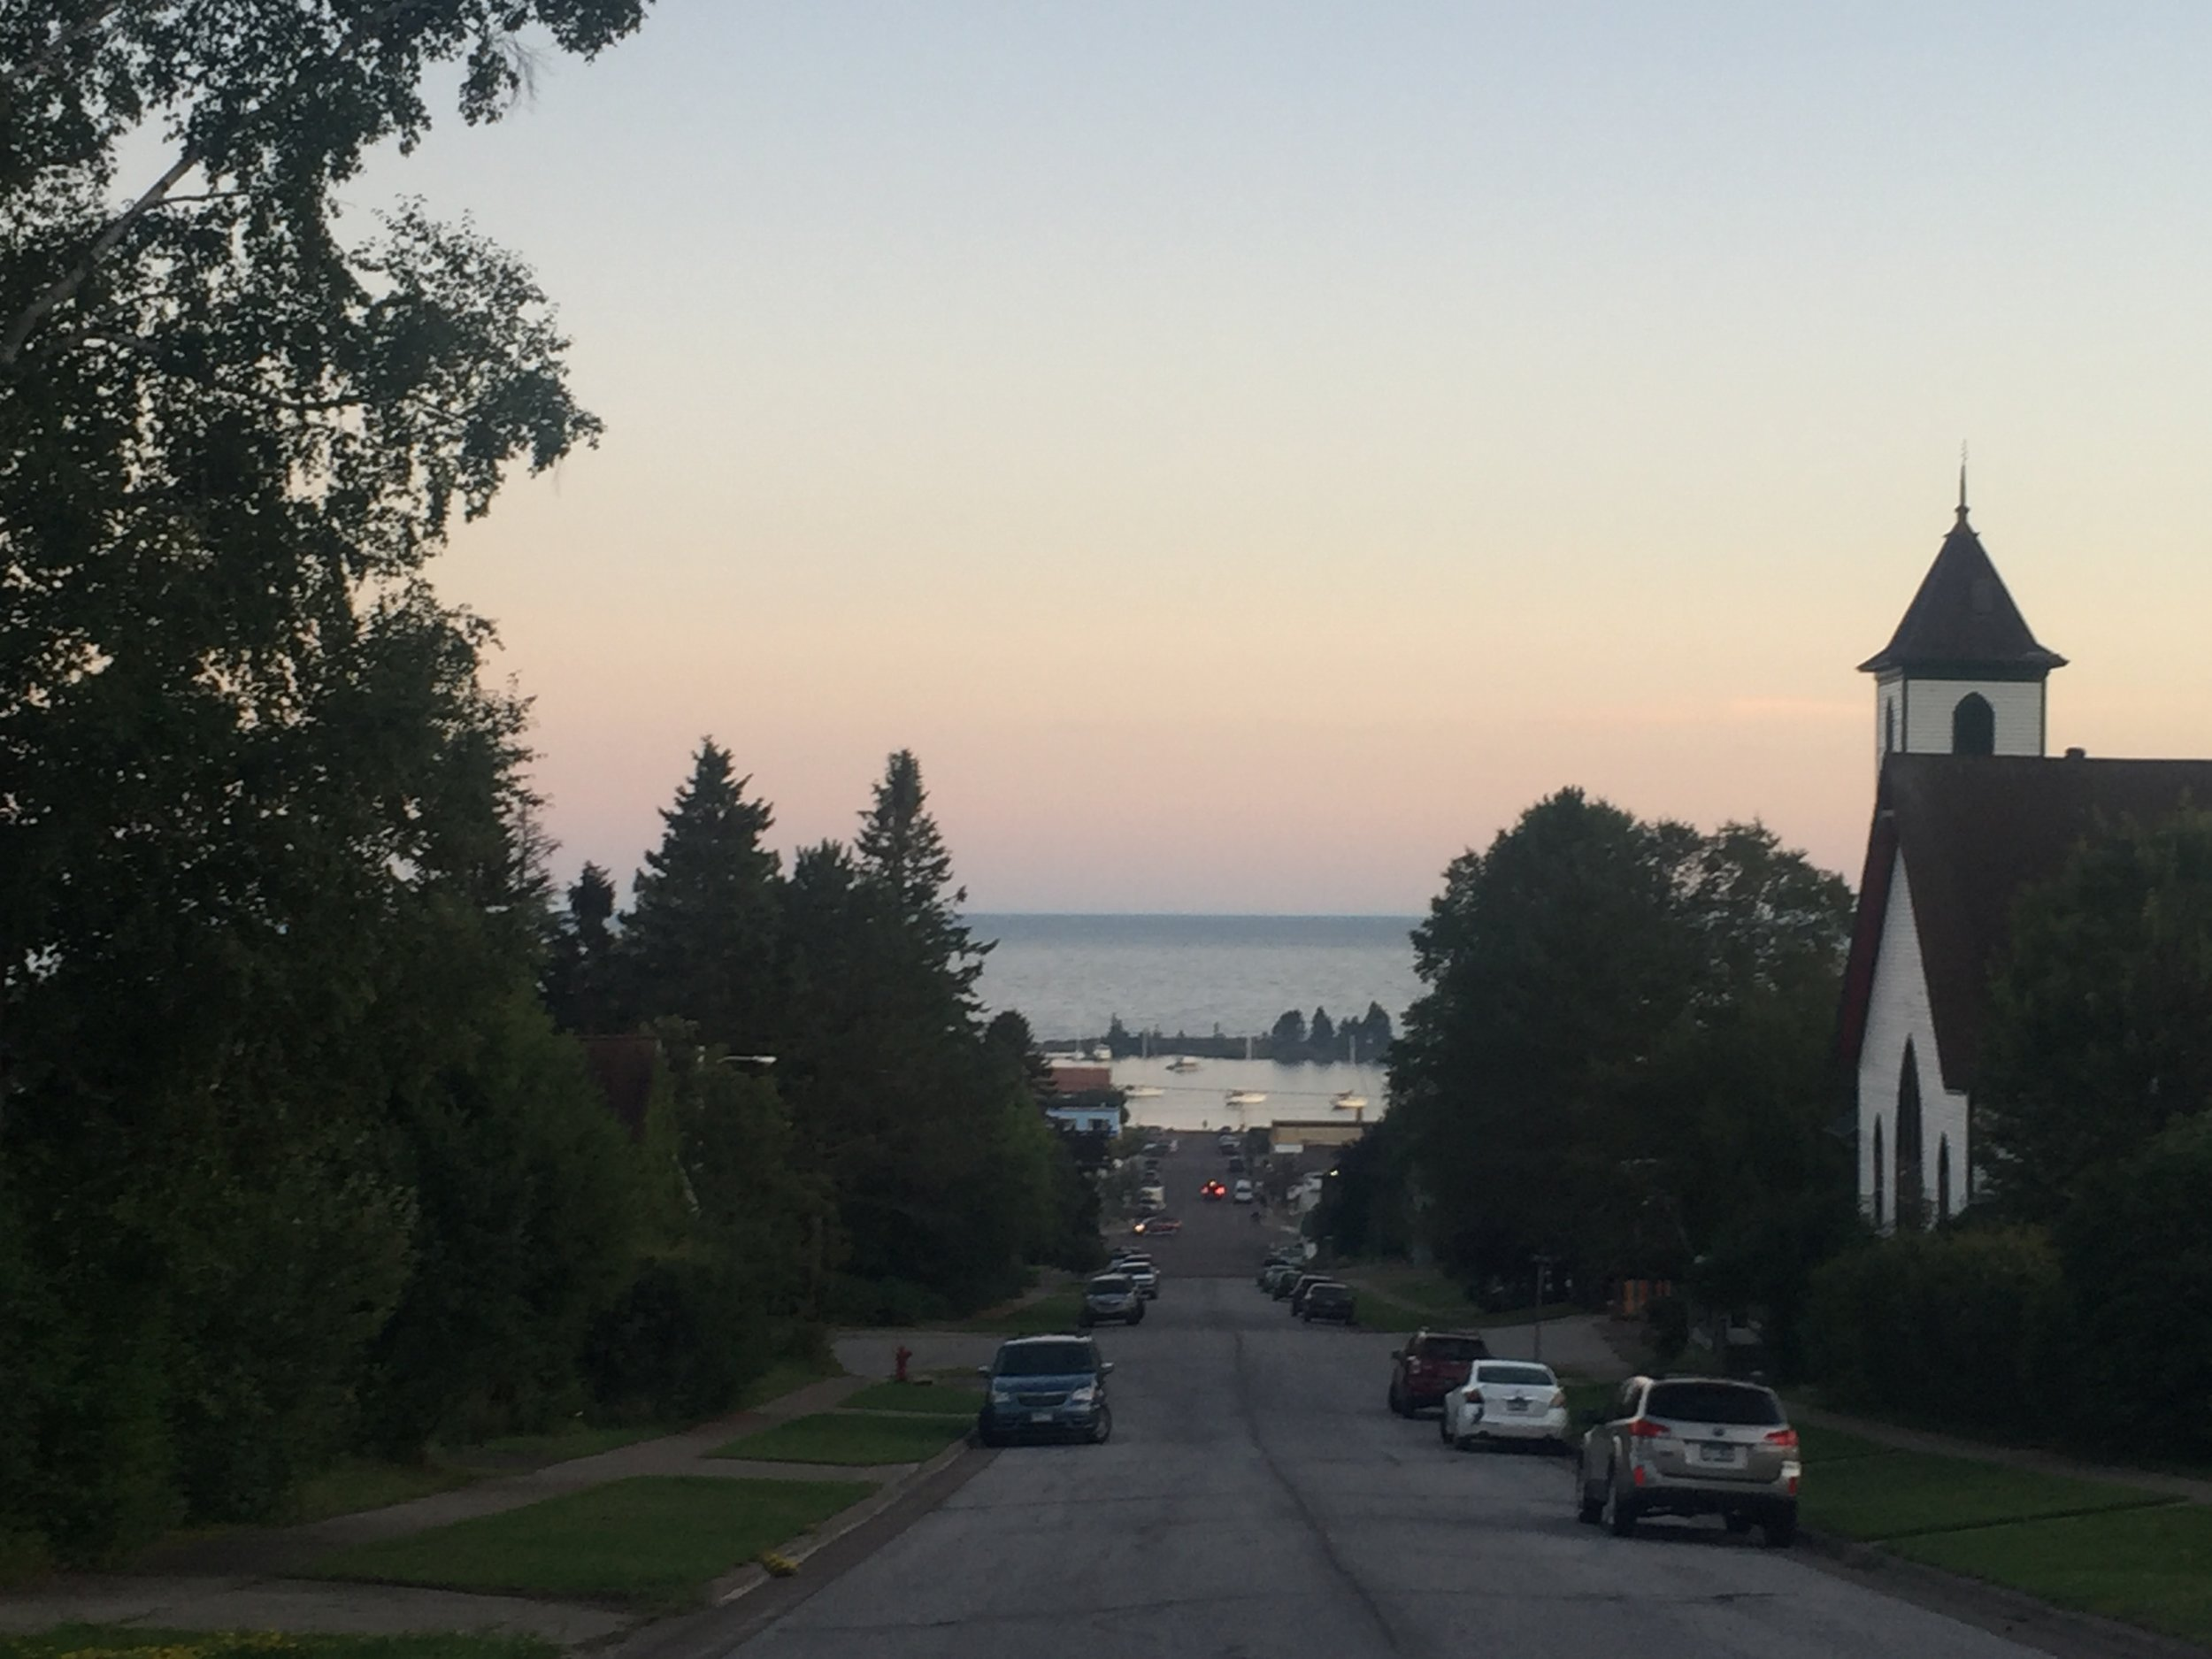 Plein Air painters often settle their easels into the boulevard out front to capture this iconic Grand Marais view. A brief 4 block walk gets you into downtown Grand Marais and all it's comforts. One block the other way and you're at the school and YMCA.